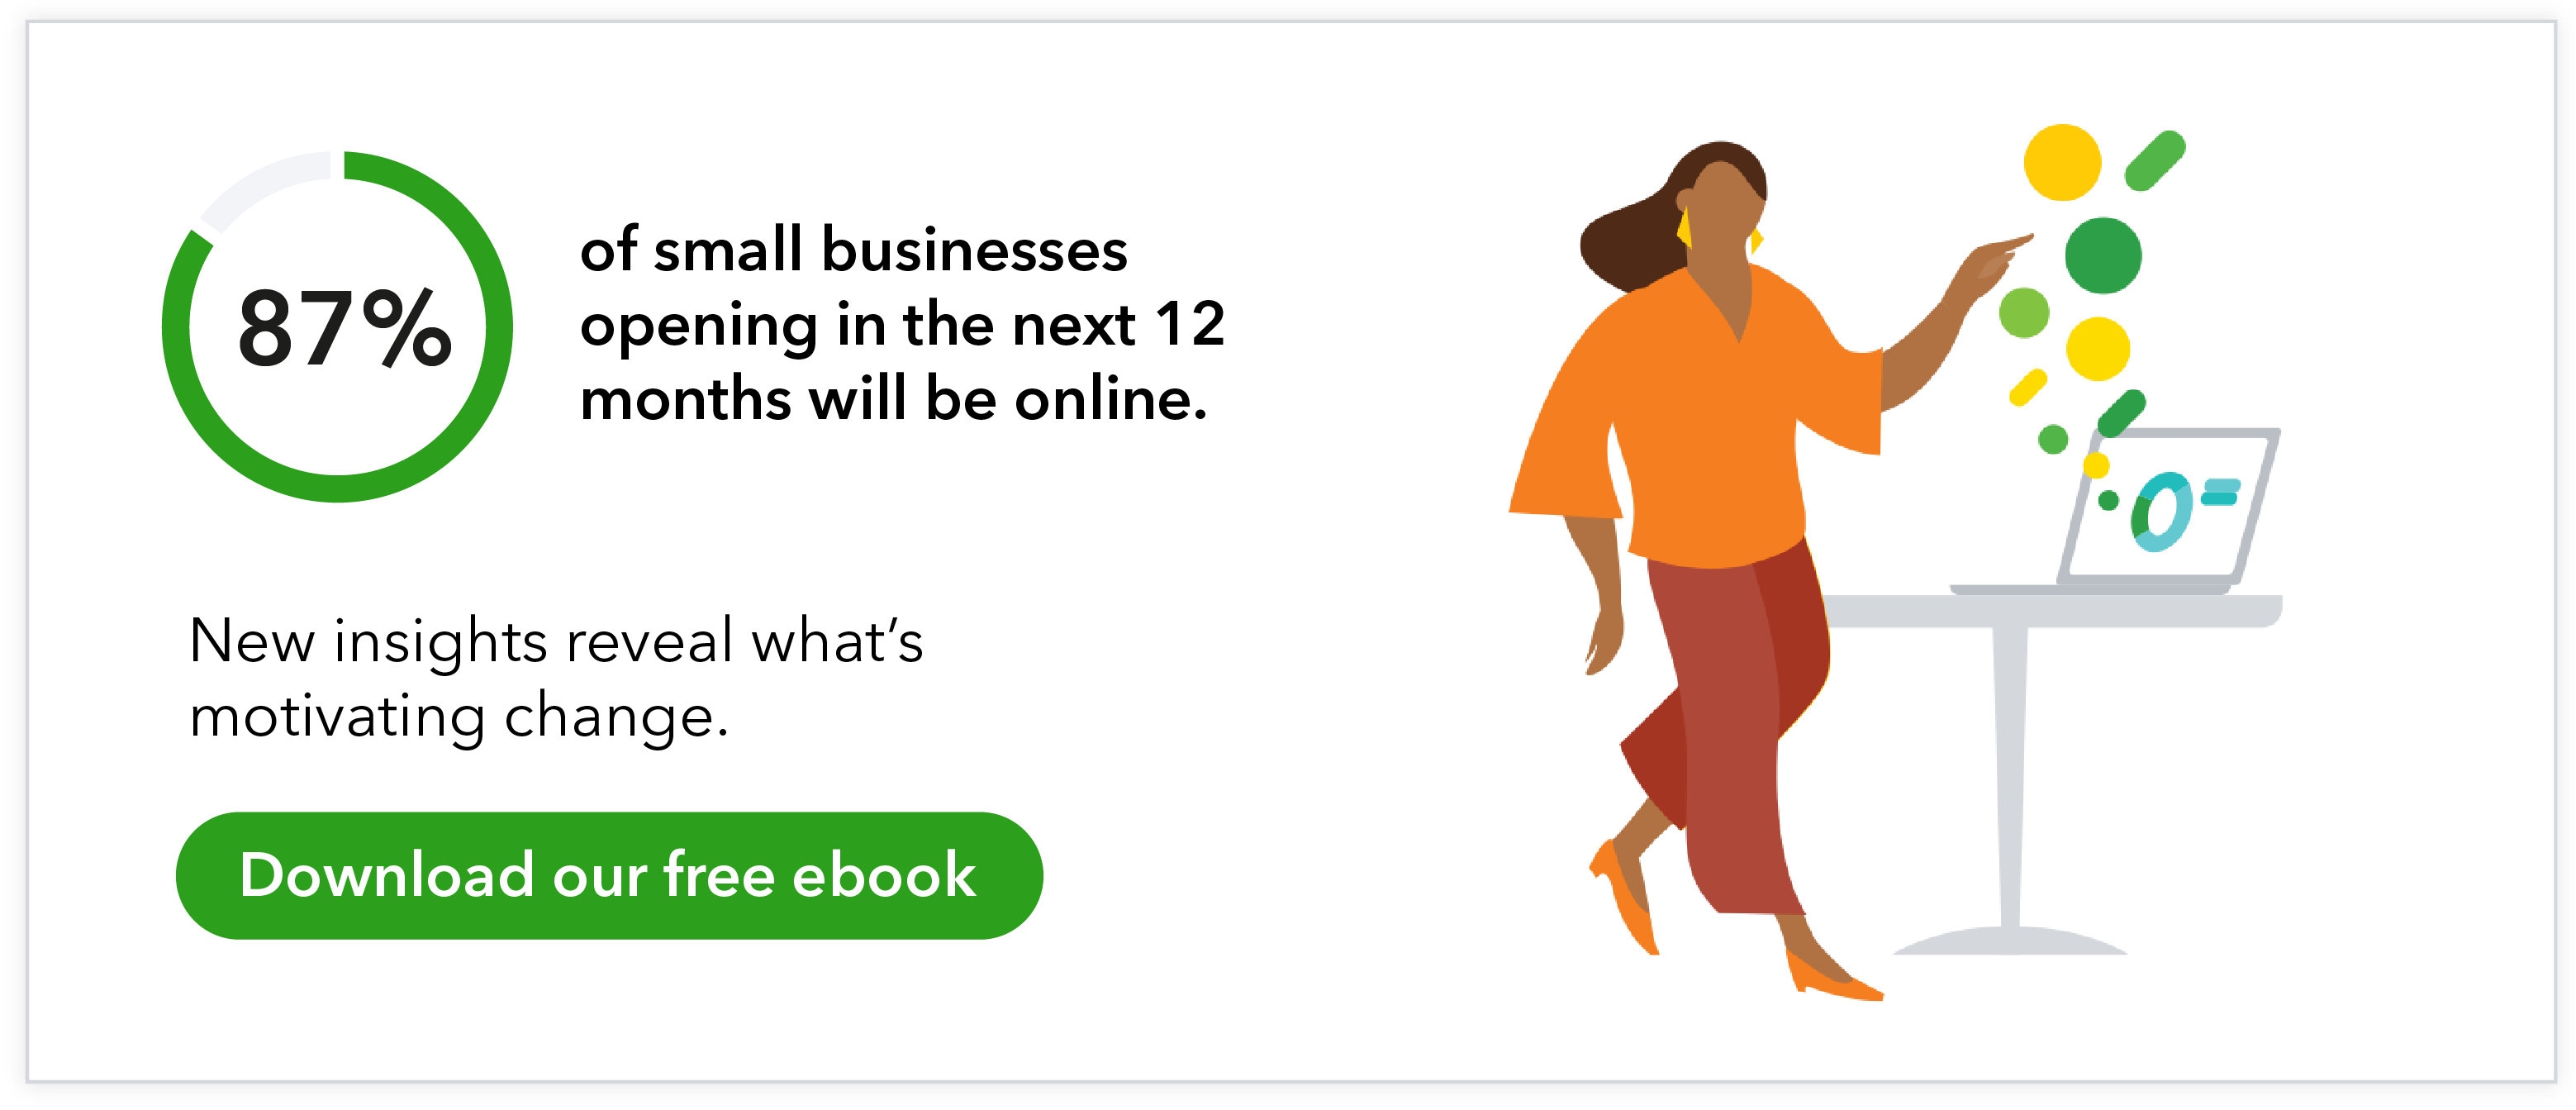 87% of small businesses opening in the next 12 months will be online. New insights reveal what's motivating change. Download our free ebook.